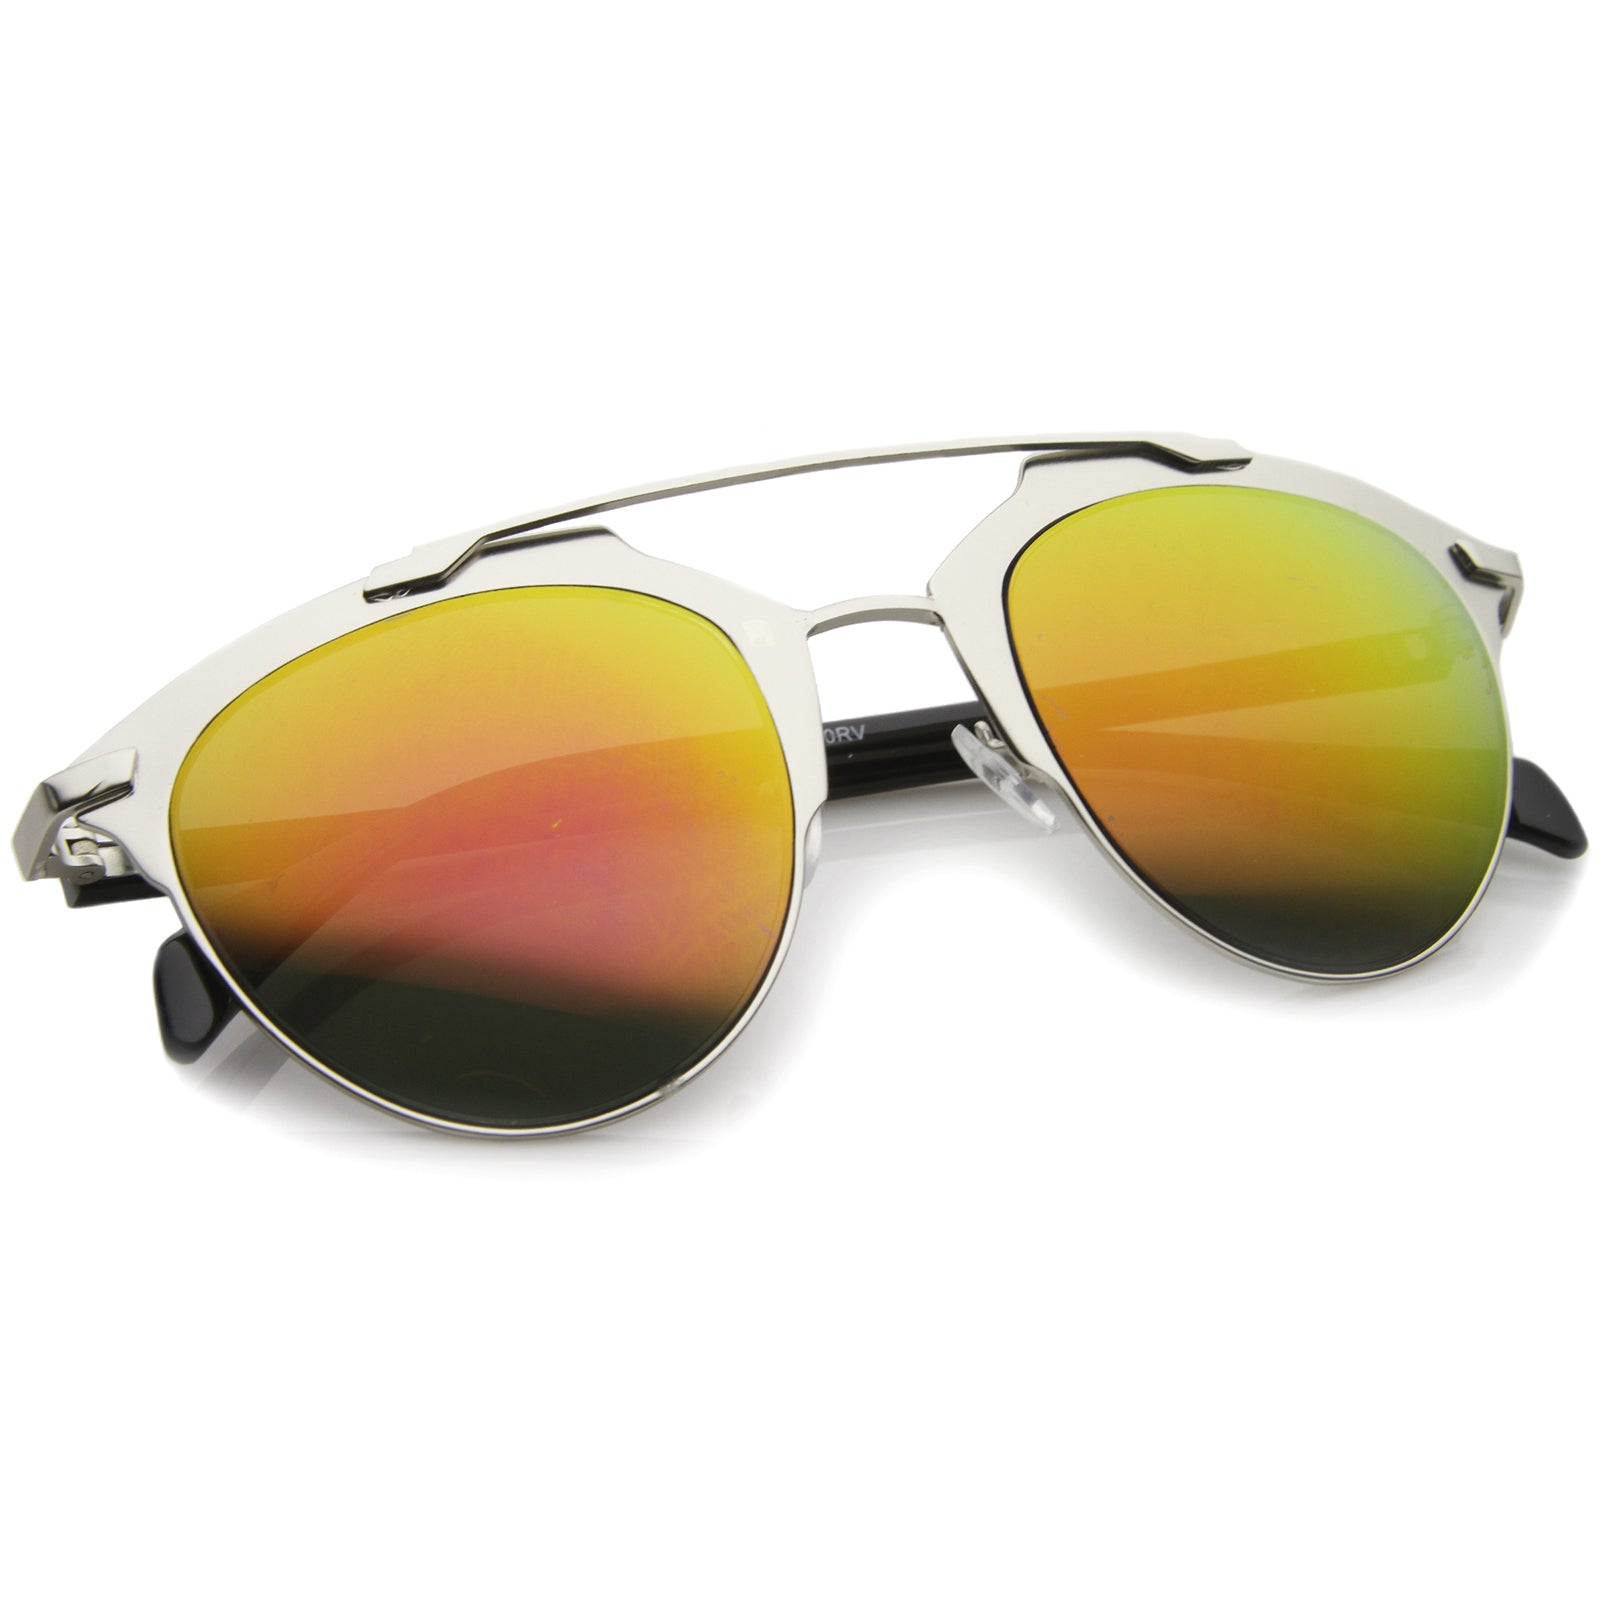 Modern Fashion Metal Double Bridge Mirror Lens Pantos Aviator Sunglasses 50mm - sunglass.la - 12